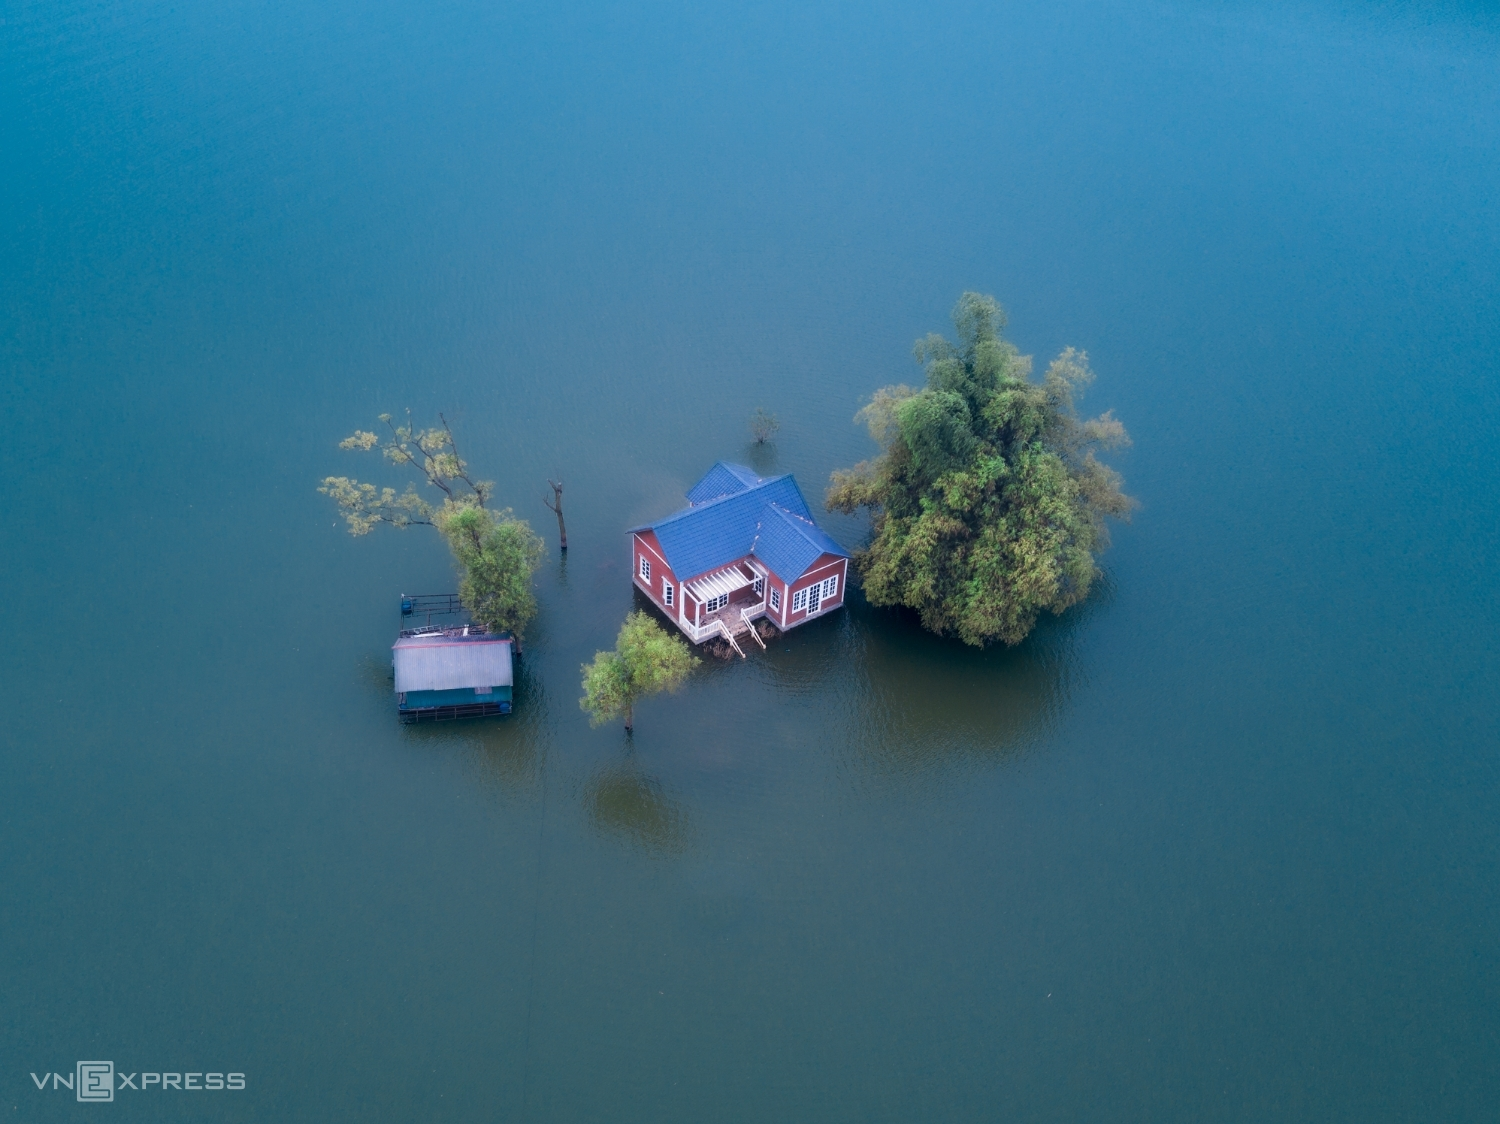 A lonely house floats on a flooded mound, part of a resort near Dong Mo Lake the outskirt district of Son Tay in Hanoi. This lake at the foot of Ba Vi Mountain is about 40 km from Hanoi, famous for its charming scenery.